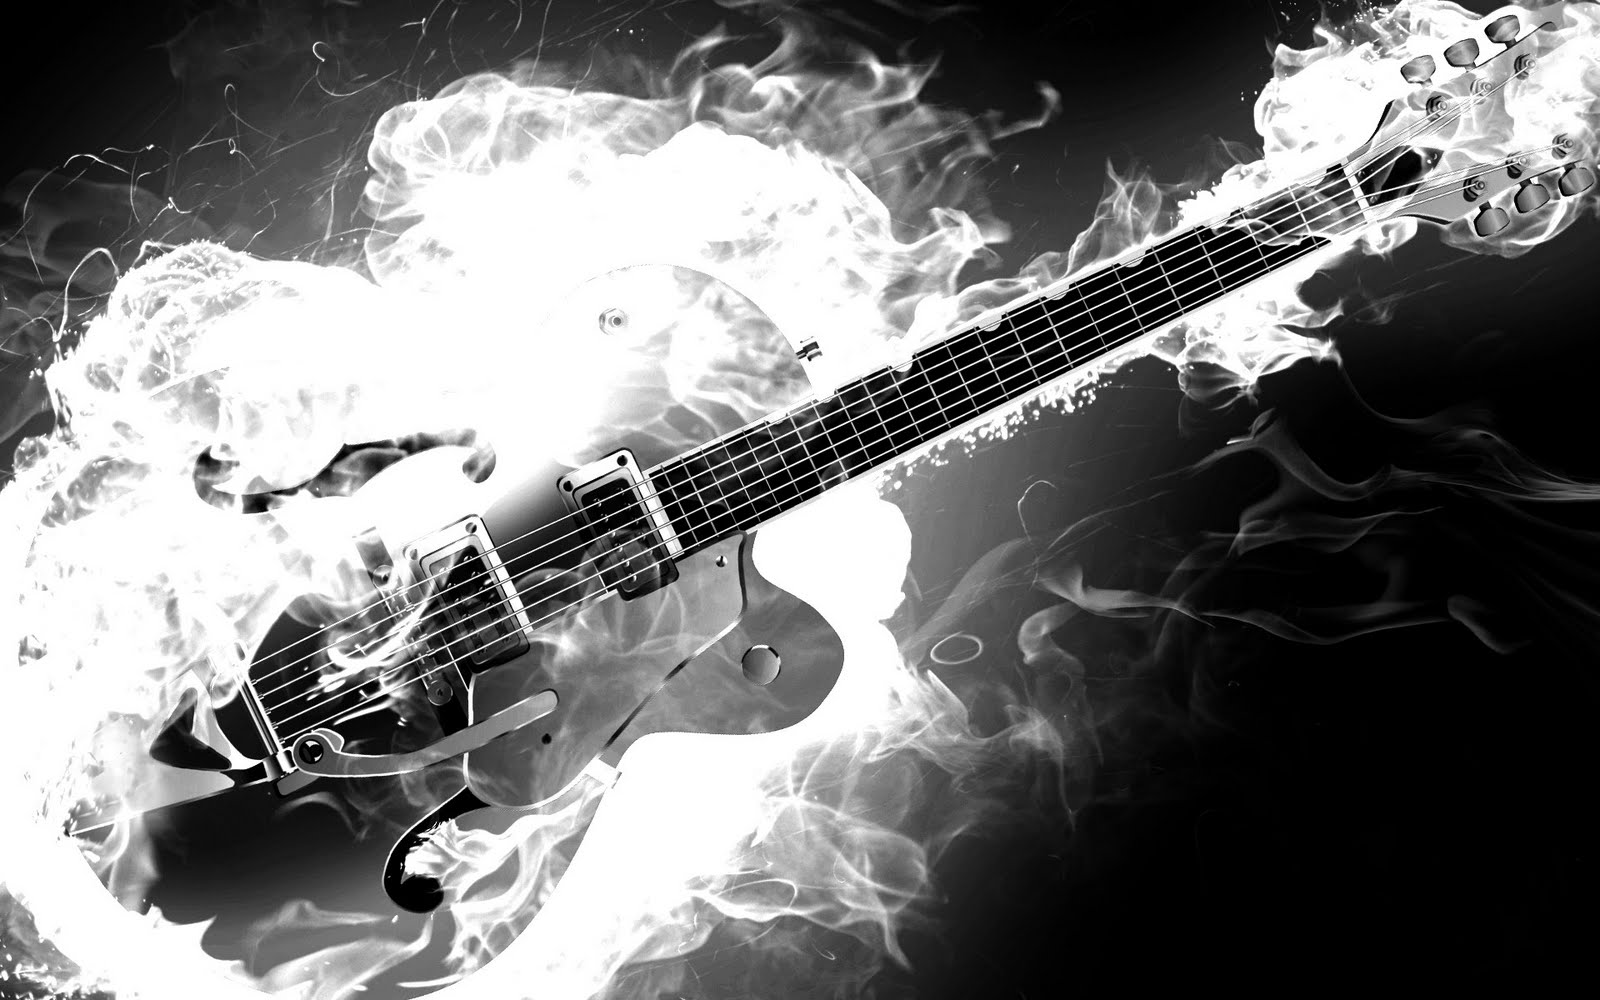 Rockabilly Guitar On Fire Monochrome Black And White Smoke Flames HD Music Desktop Wallpaper 1920x1200 Great Sound